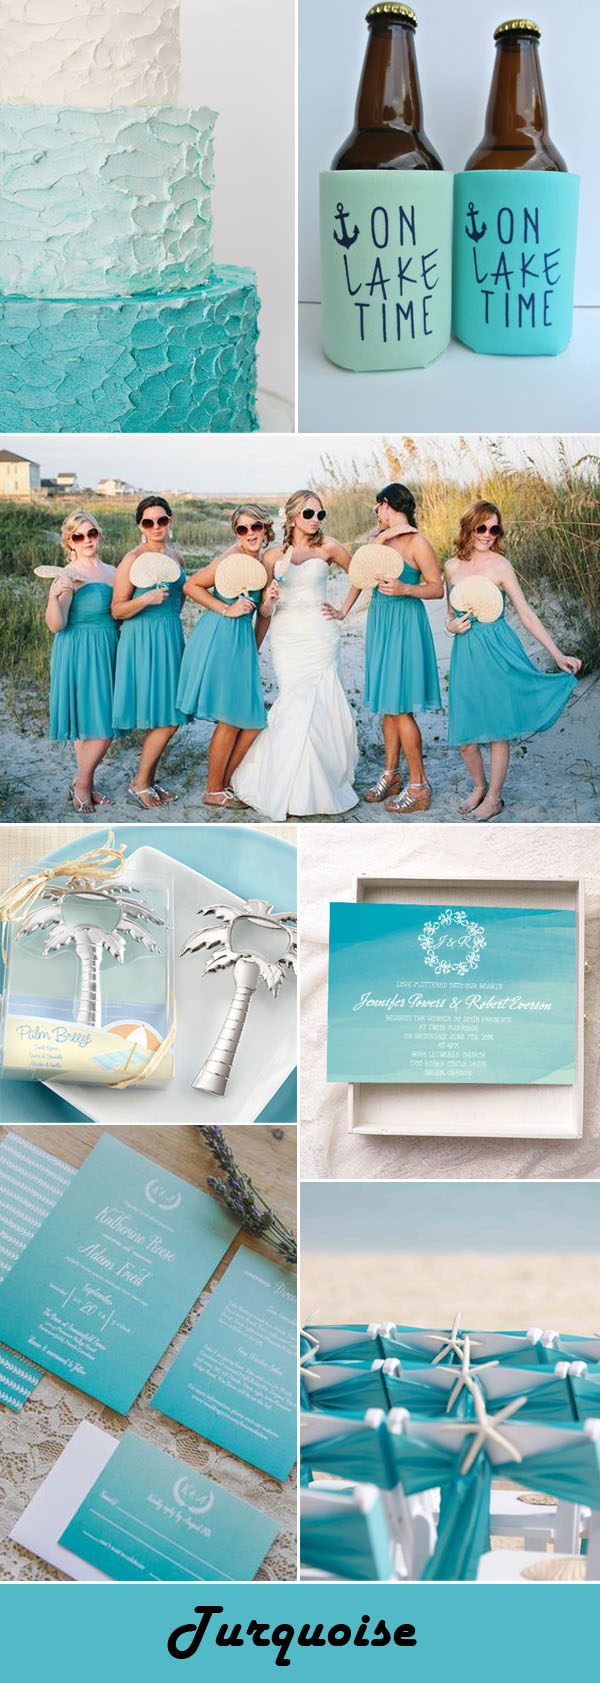 turquoise beach wedding color ideas with personalized koozies wedding favors